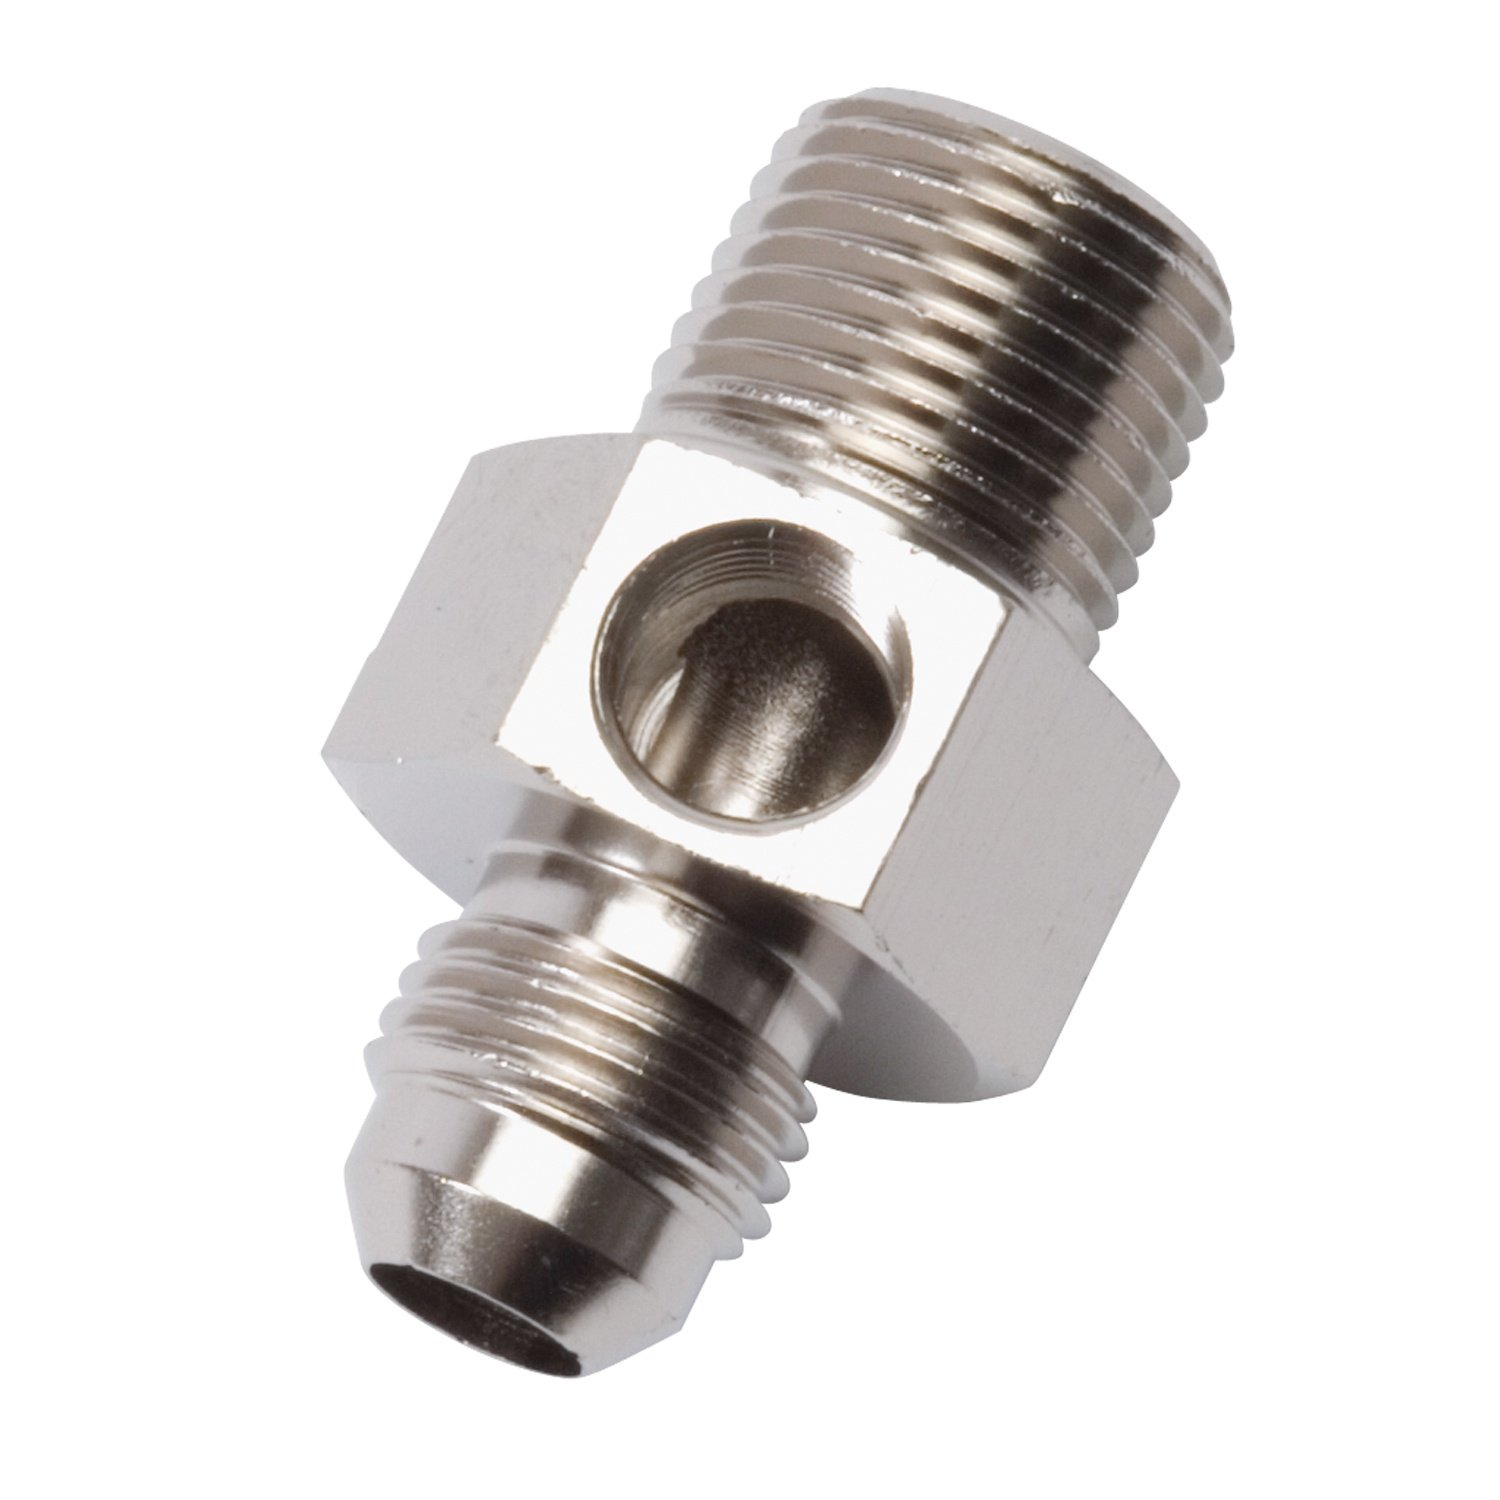 Russell 670061 Endura -6AN Flare to Pipe Pressure Adapter